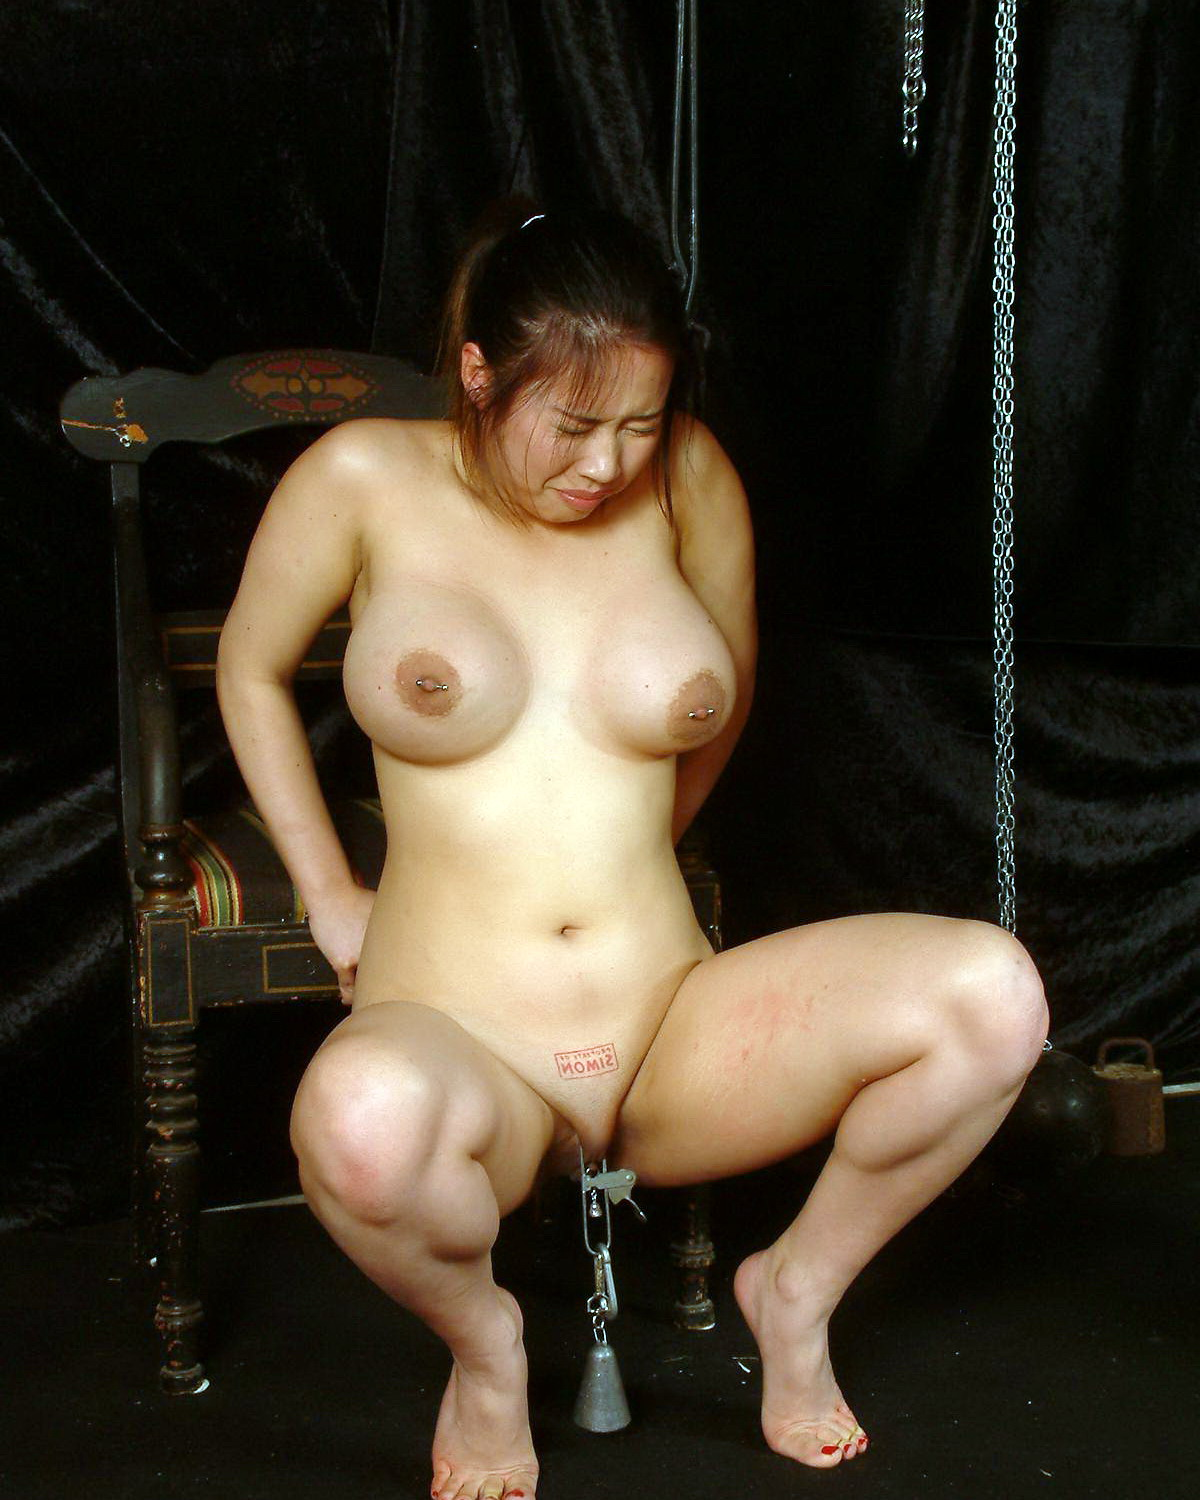 Japenese bdsm sites